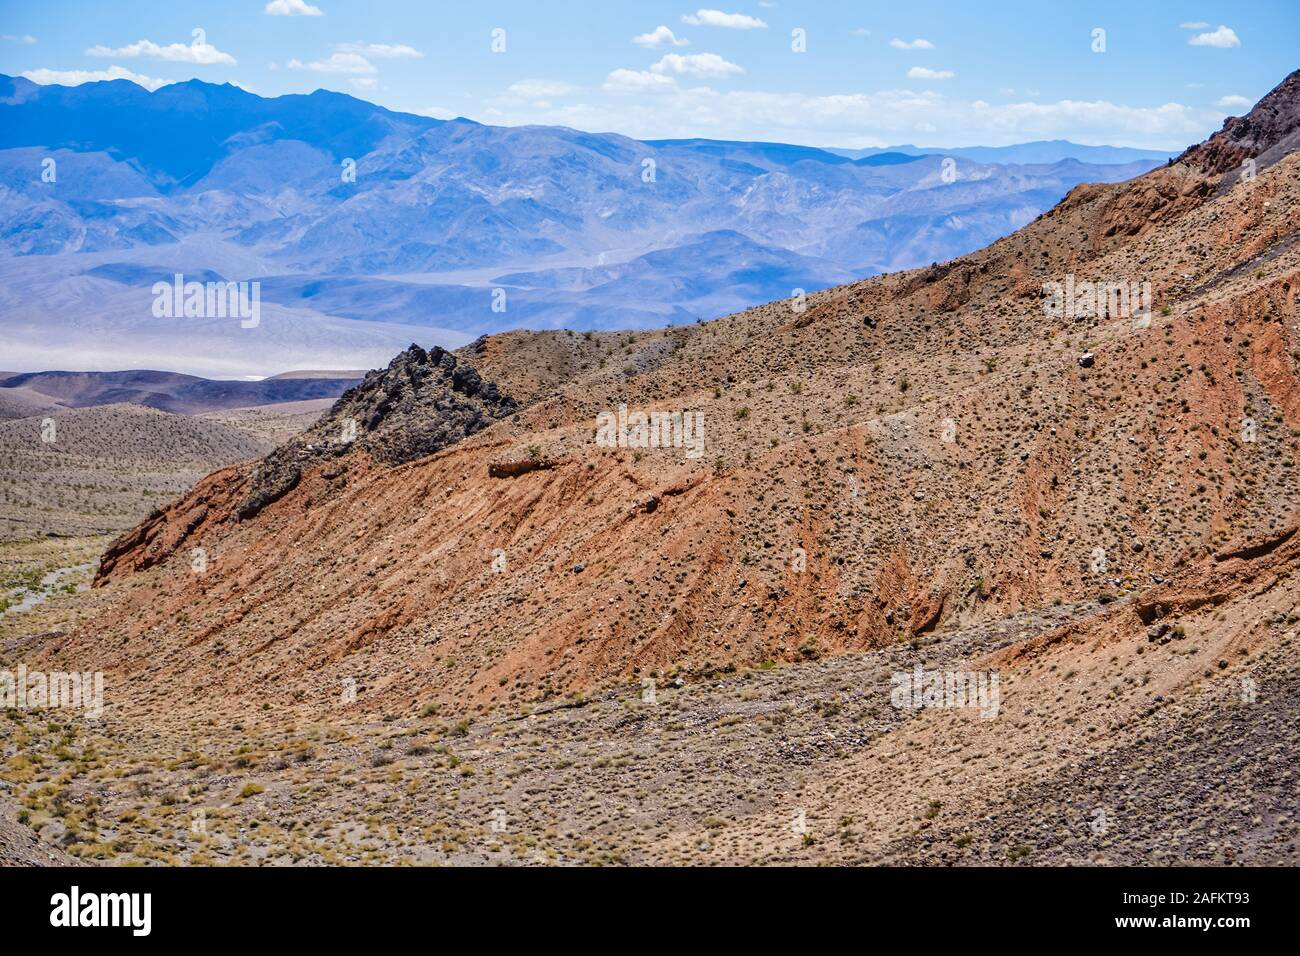 Towne Pass, the major passage over the Panamint Range via highway 190 in Death Valley, United States Stock Photo